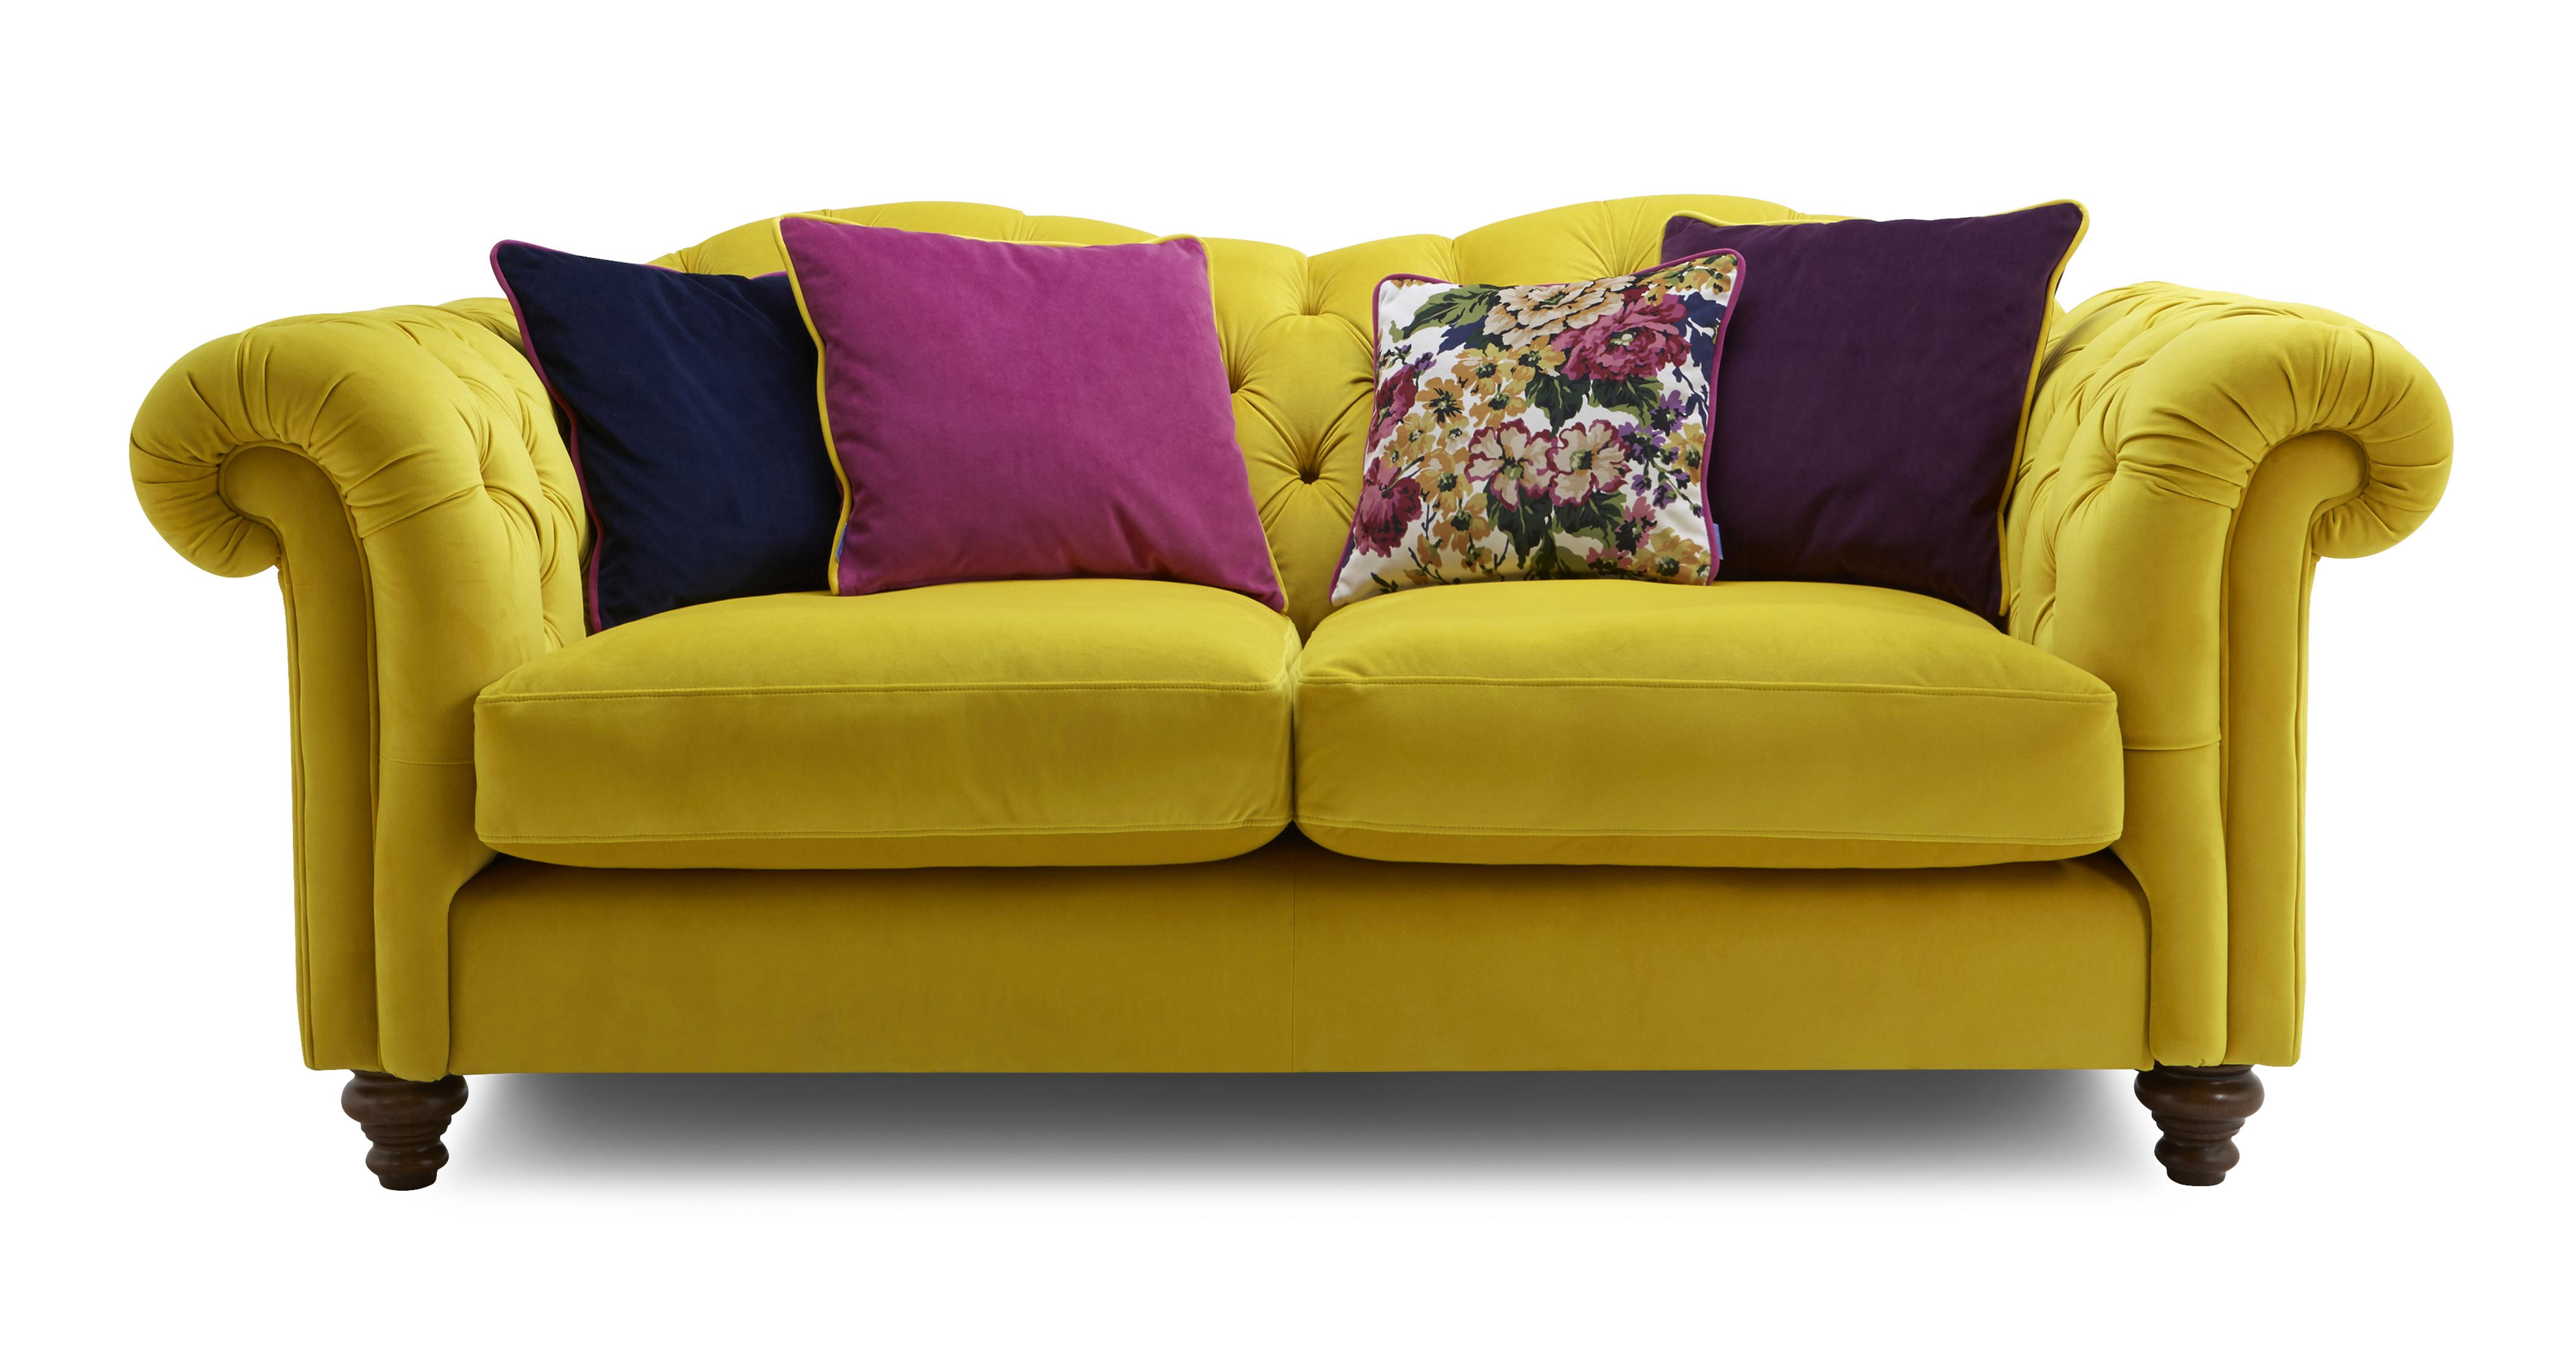 Hard Goods Sofa Buying Agency in India